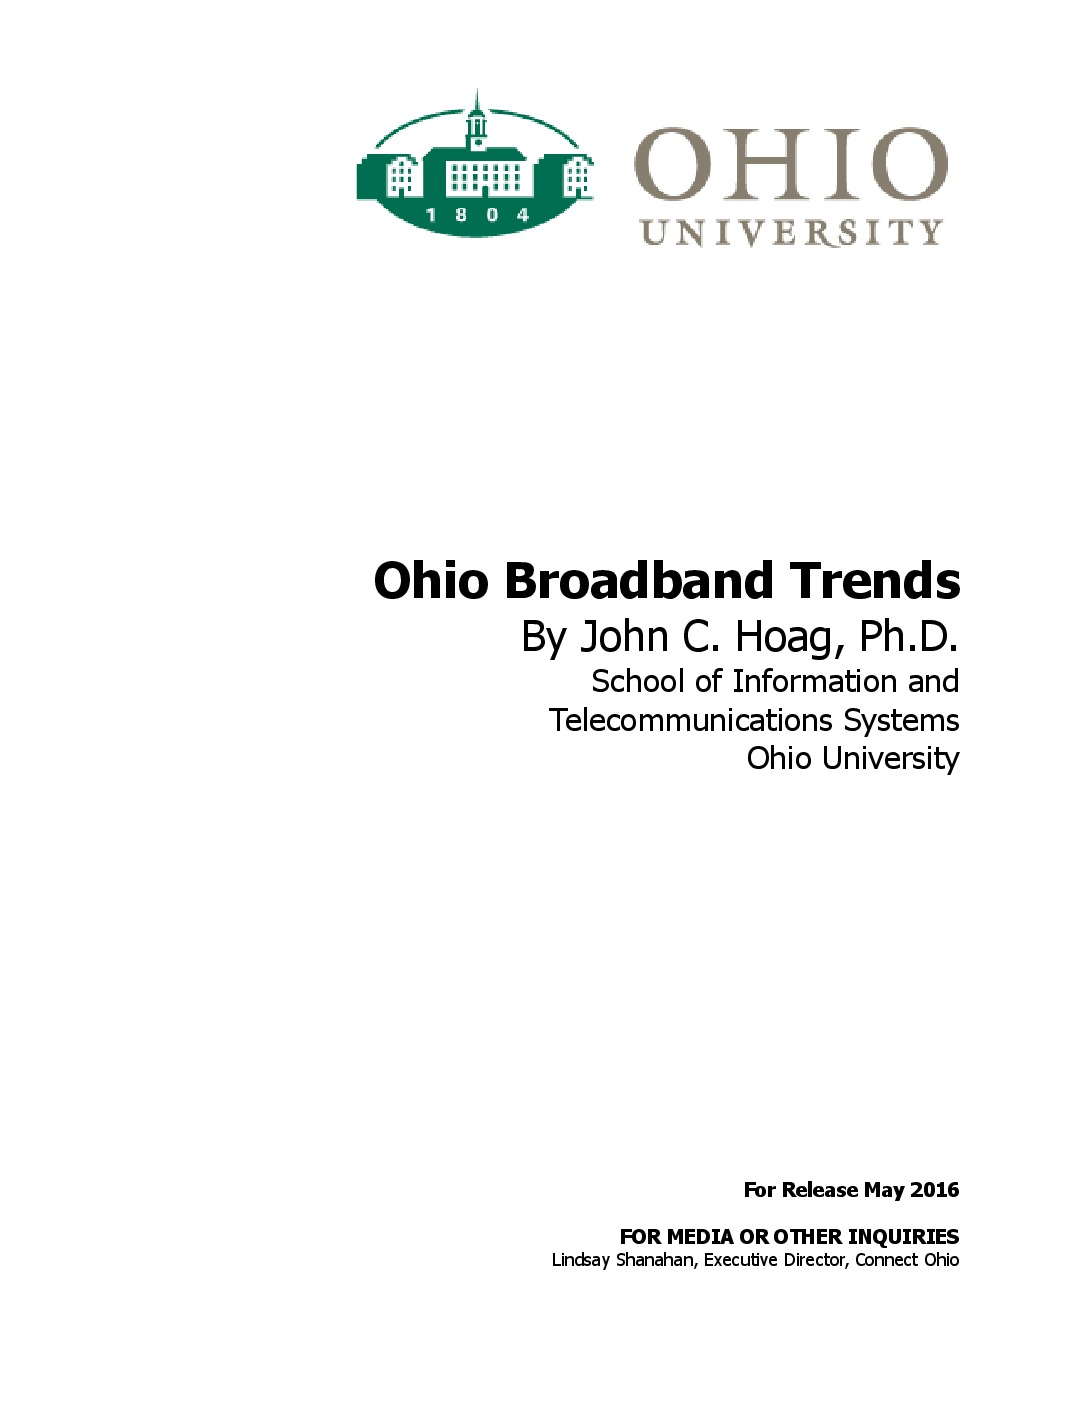 Ohio University: Ohio Broadband Trends